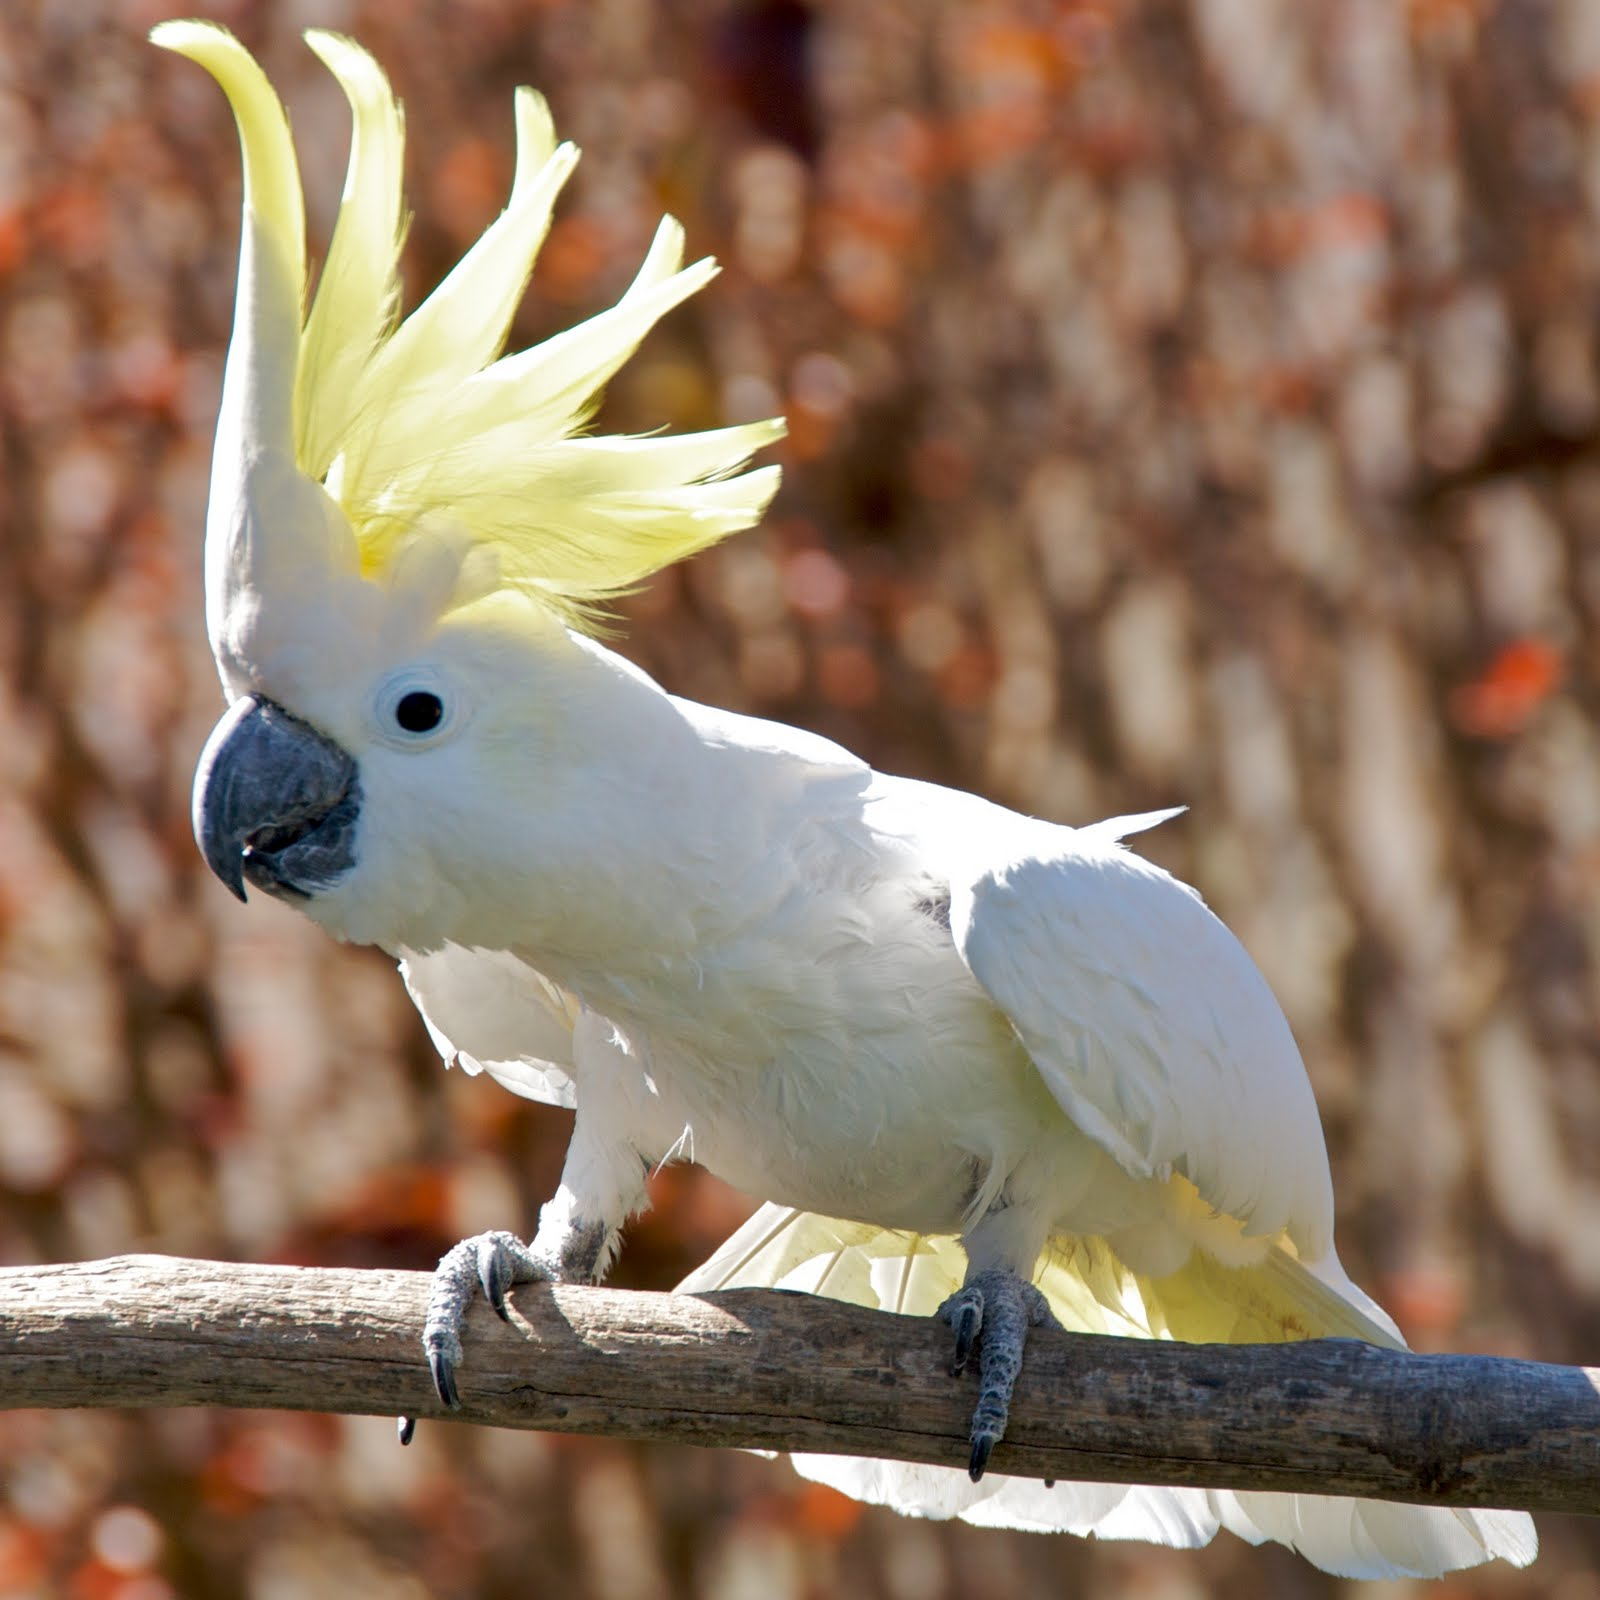 Cacatua_galerita_-perching_on_branch_-crest-8a-2c